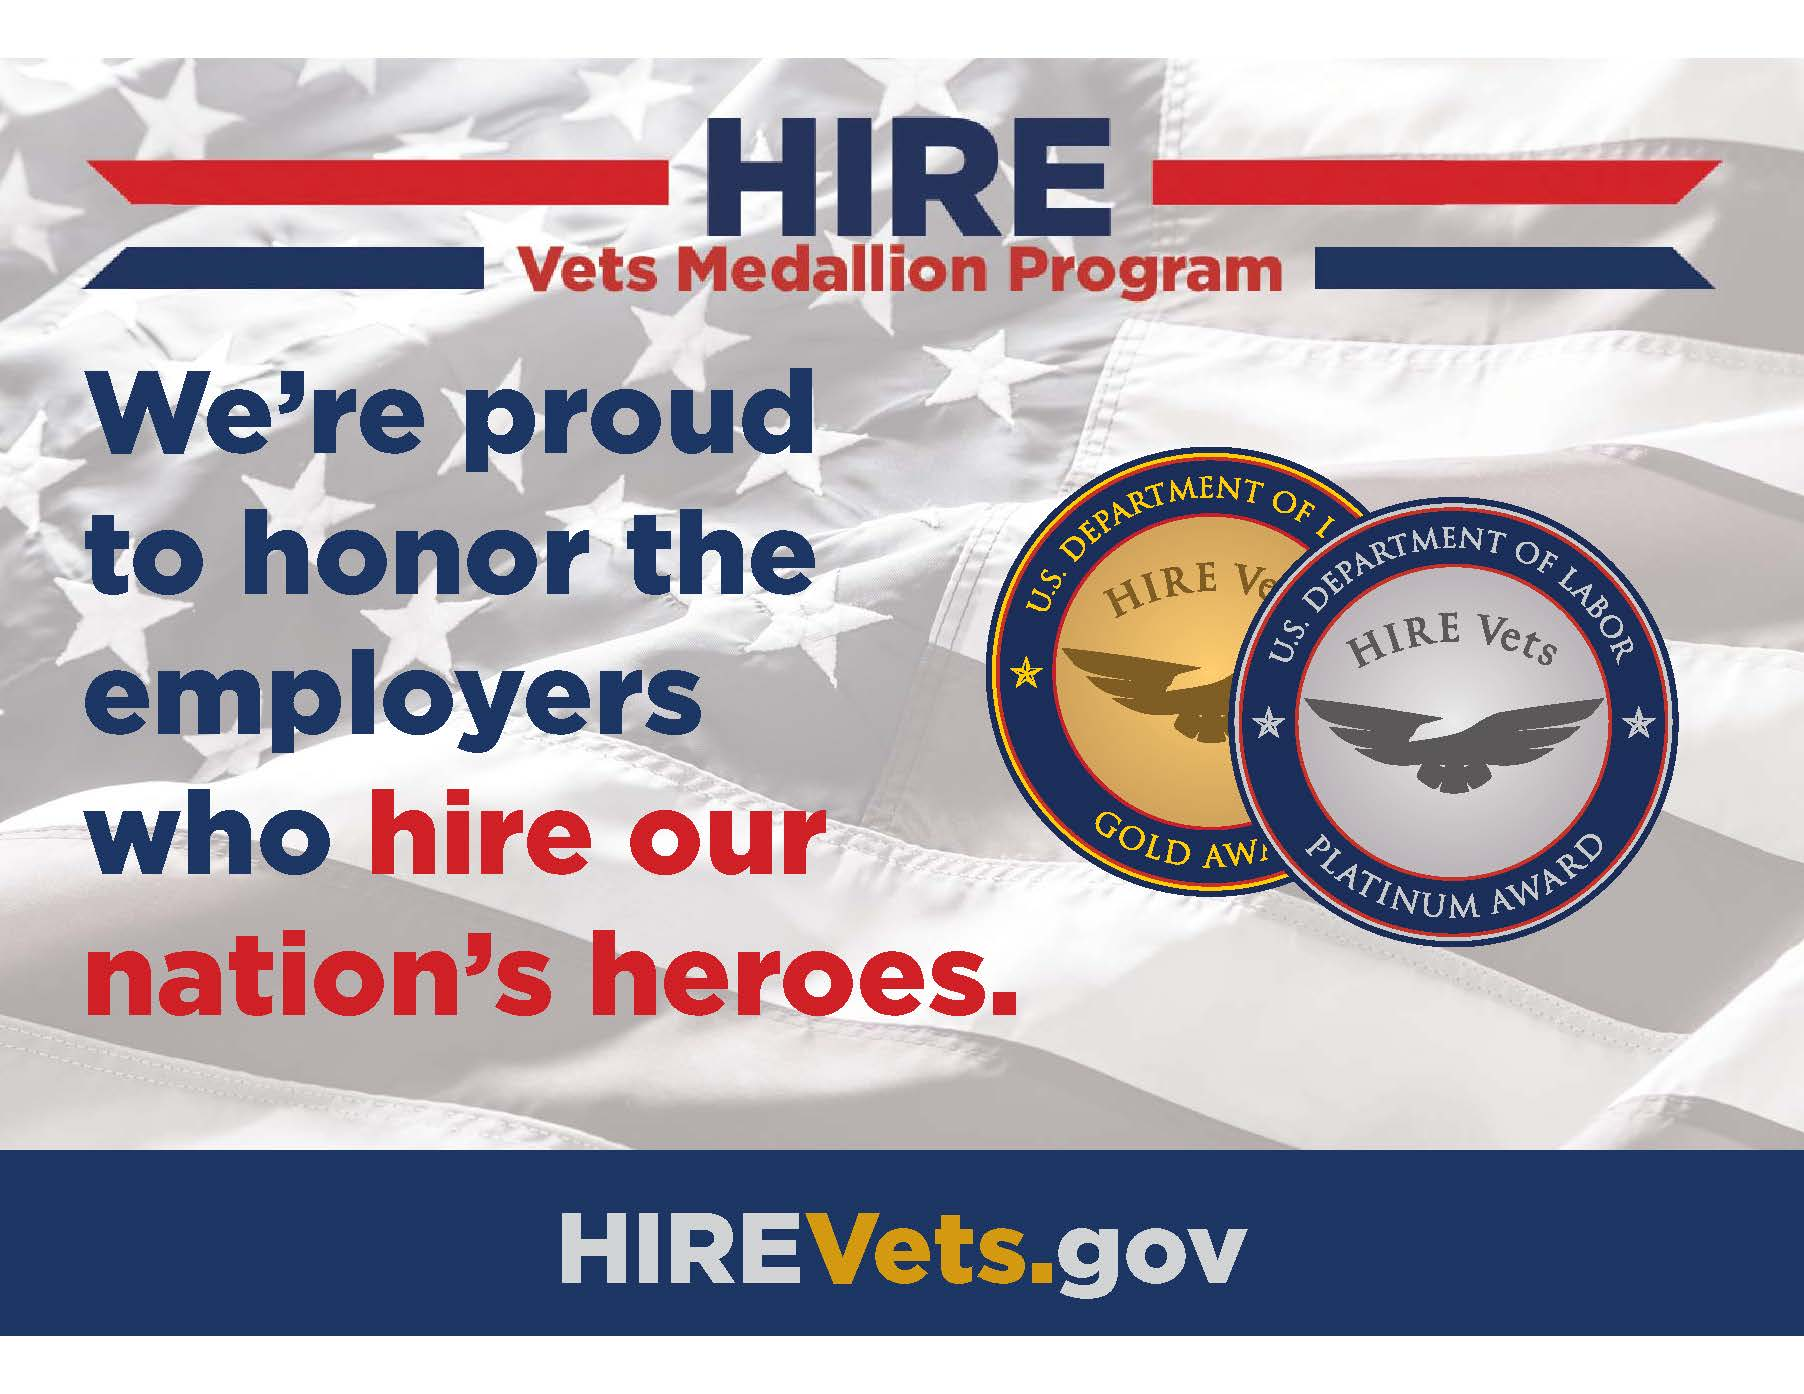 We're proud to honor the employers who hire our nation's heroes